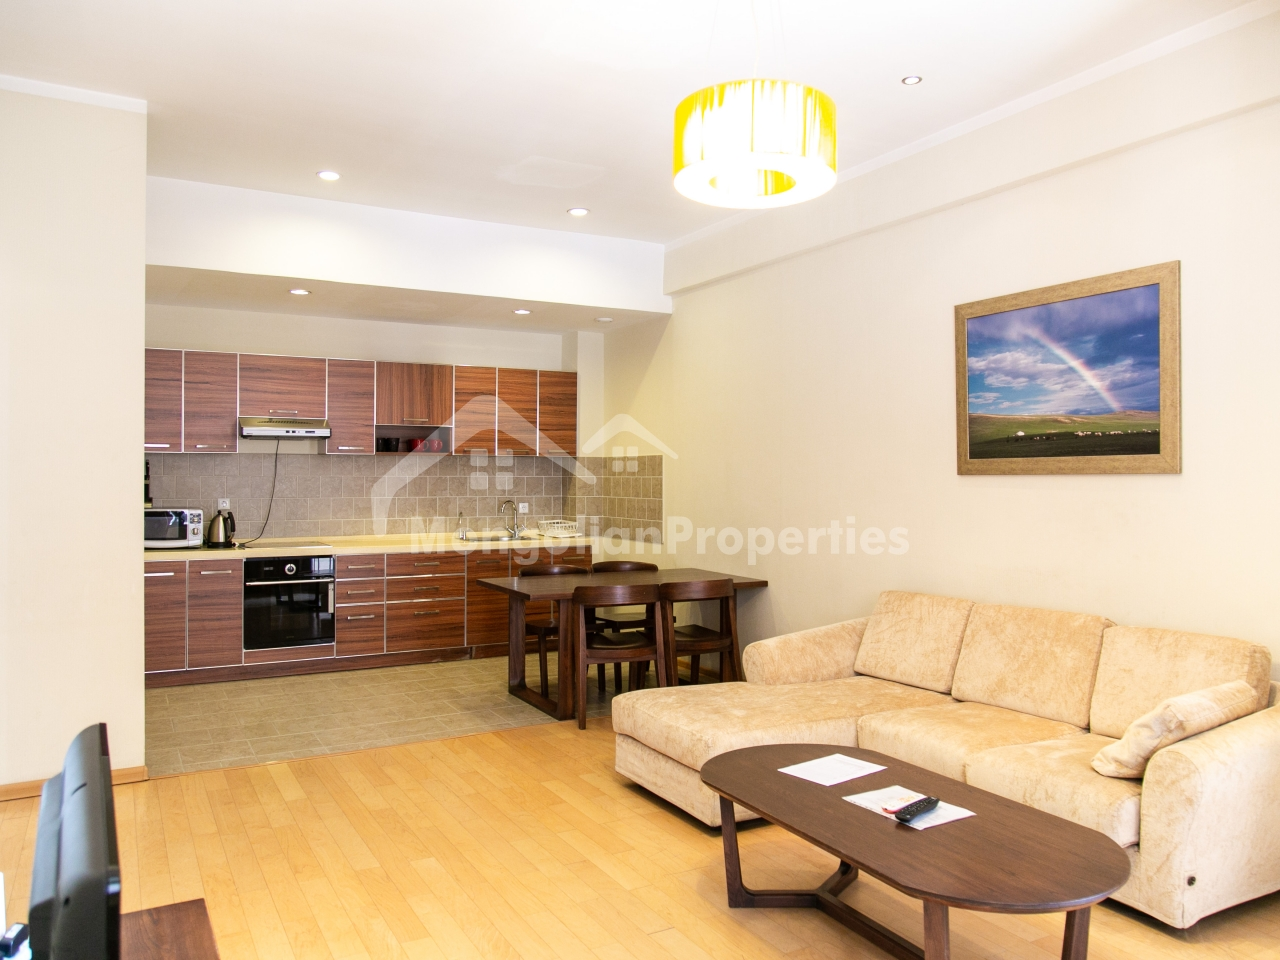 FOR RENT: 1-BEDROOM APARTMENT AT REGENCY RESIDENCE